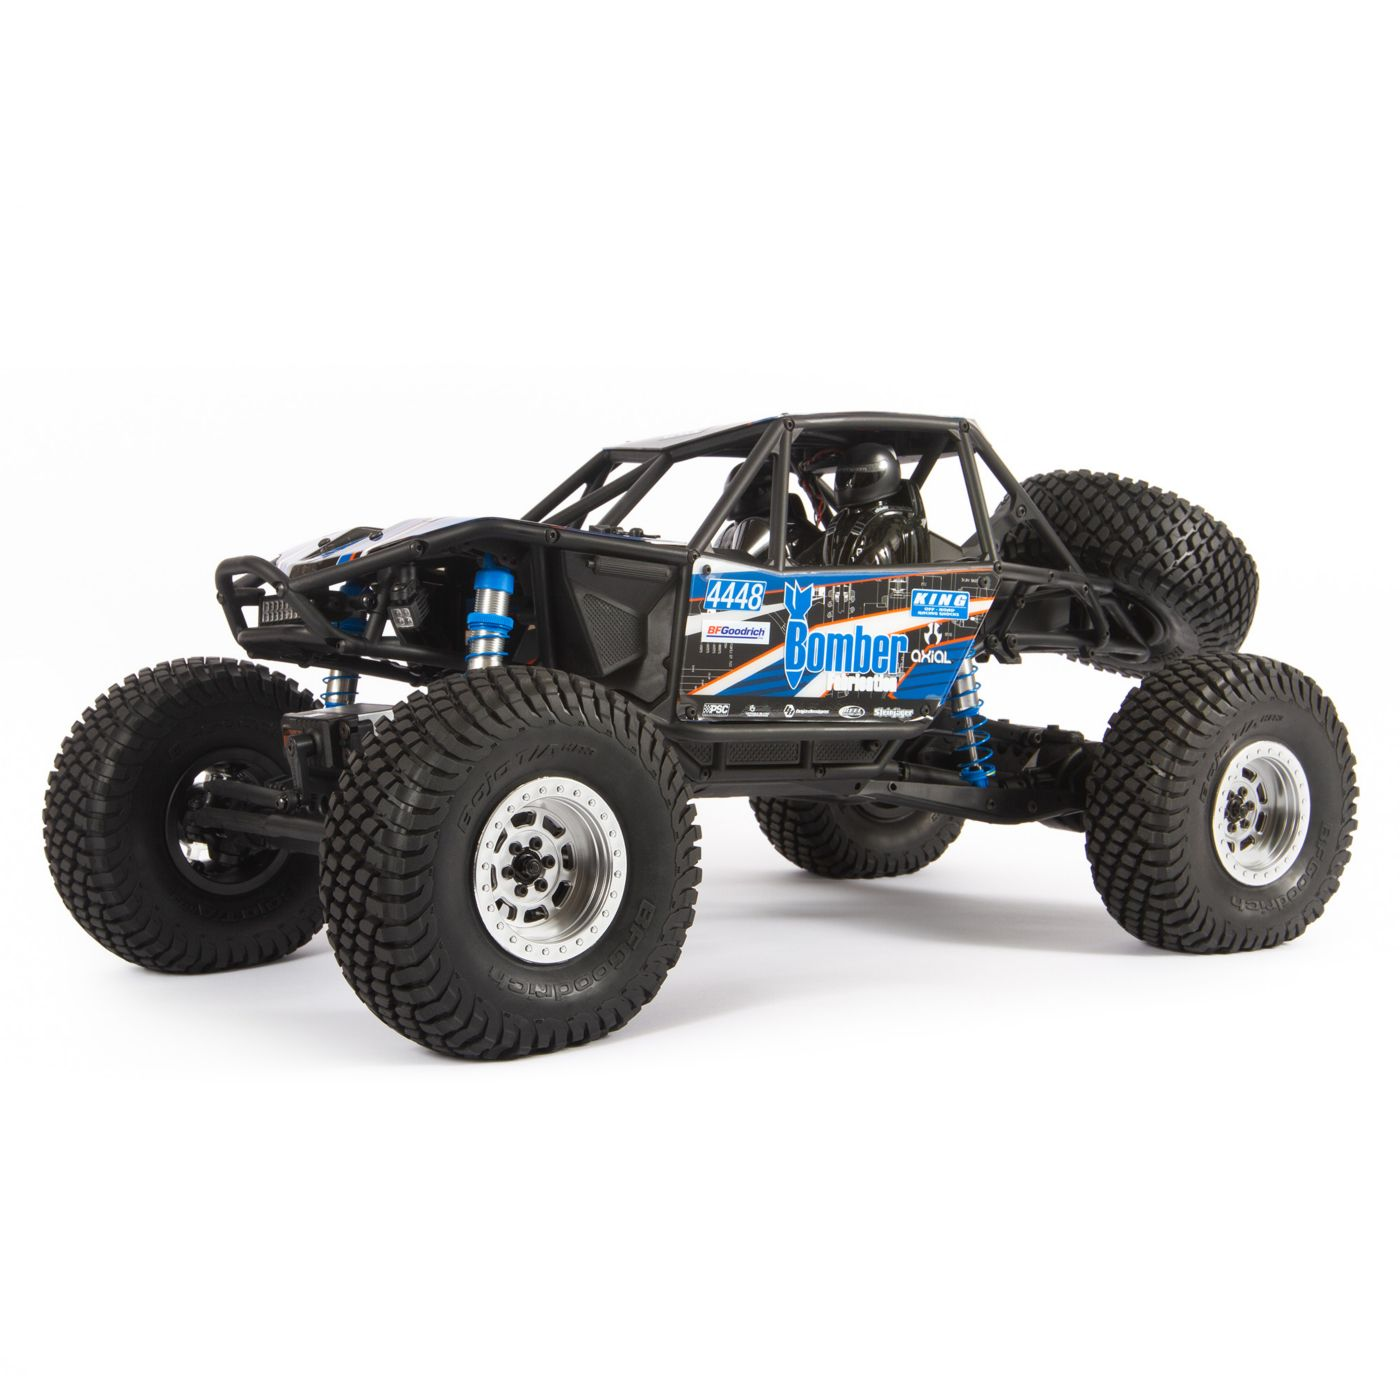 Axial 1/10 RR10 Bomber 4wd Blue RTR